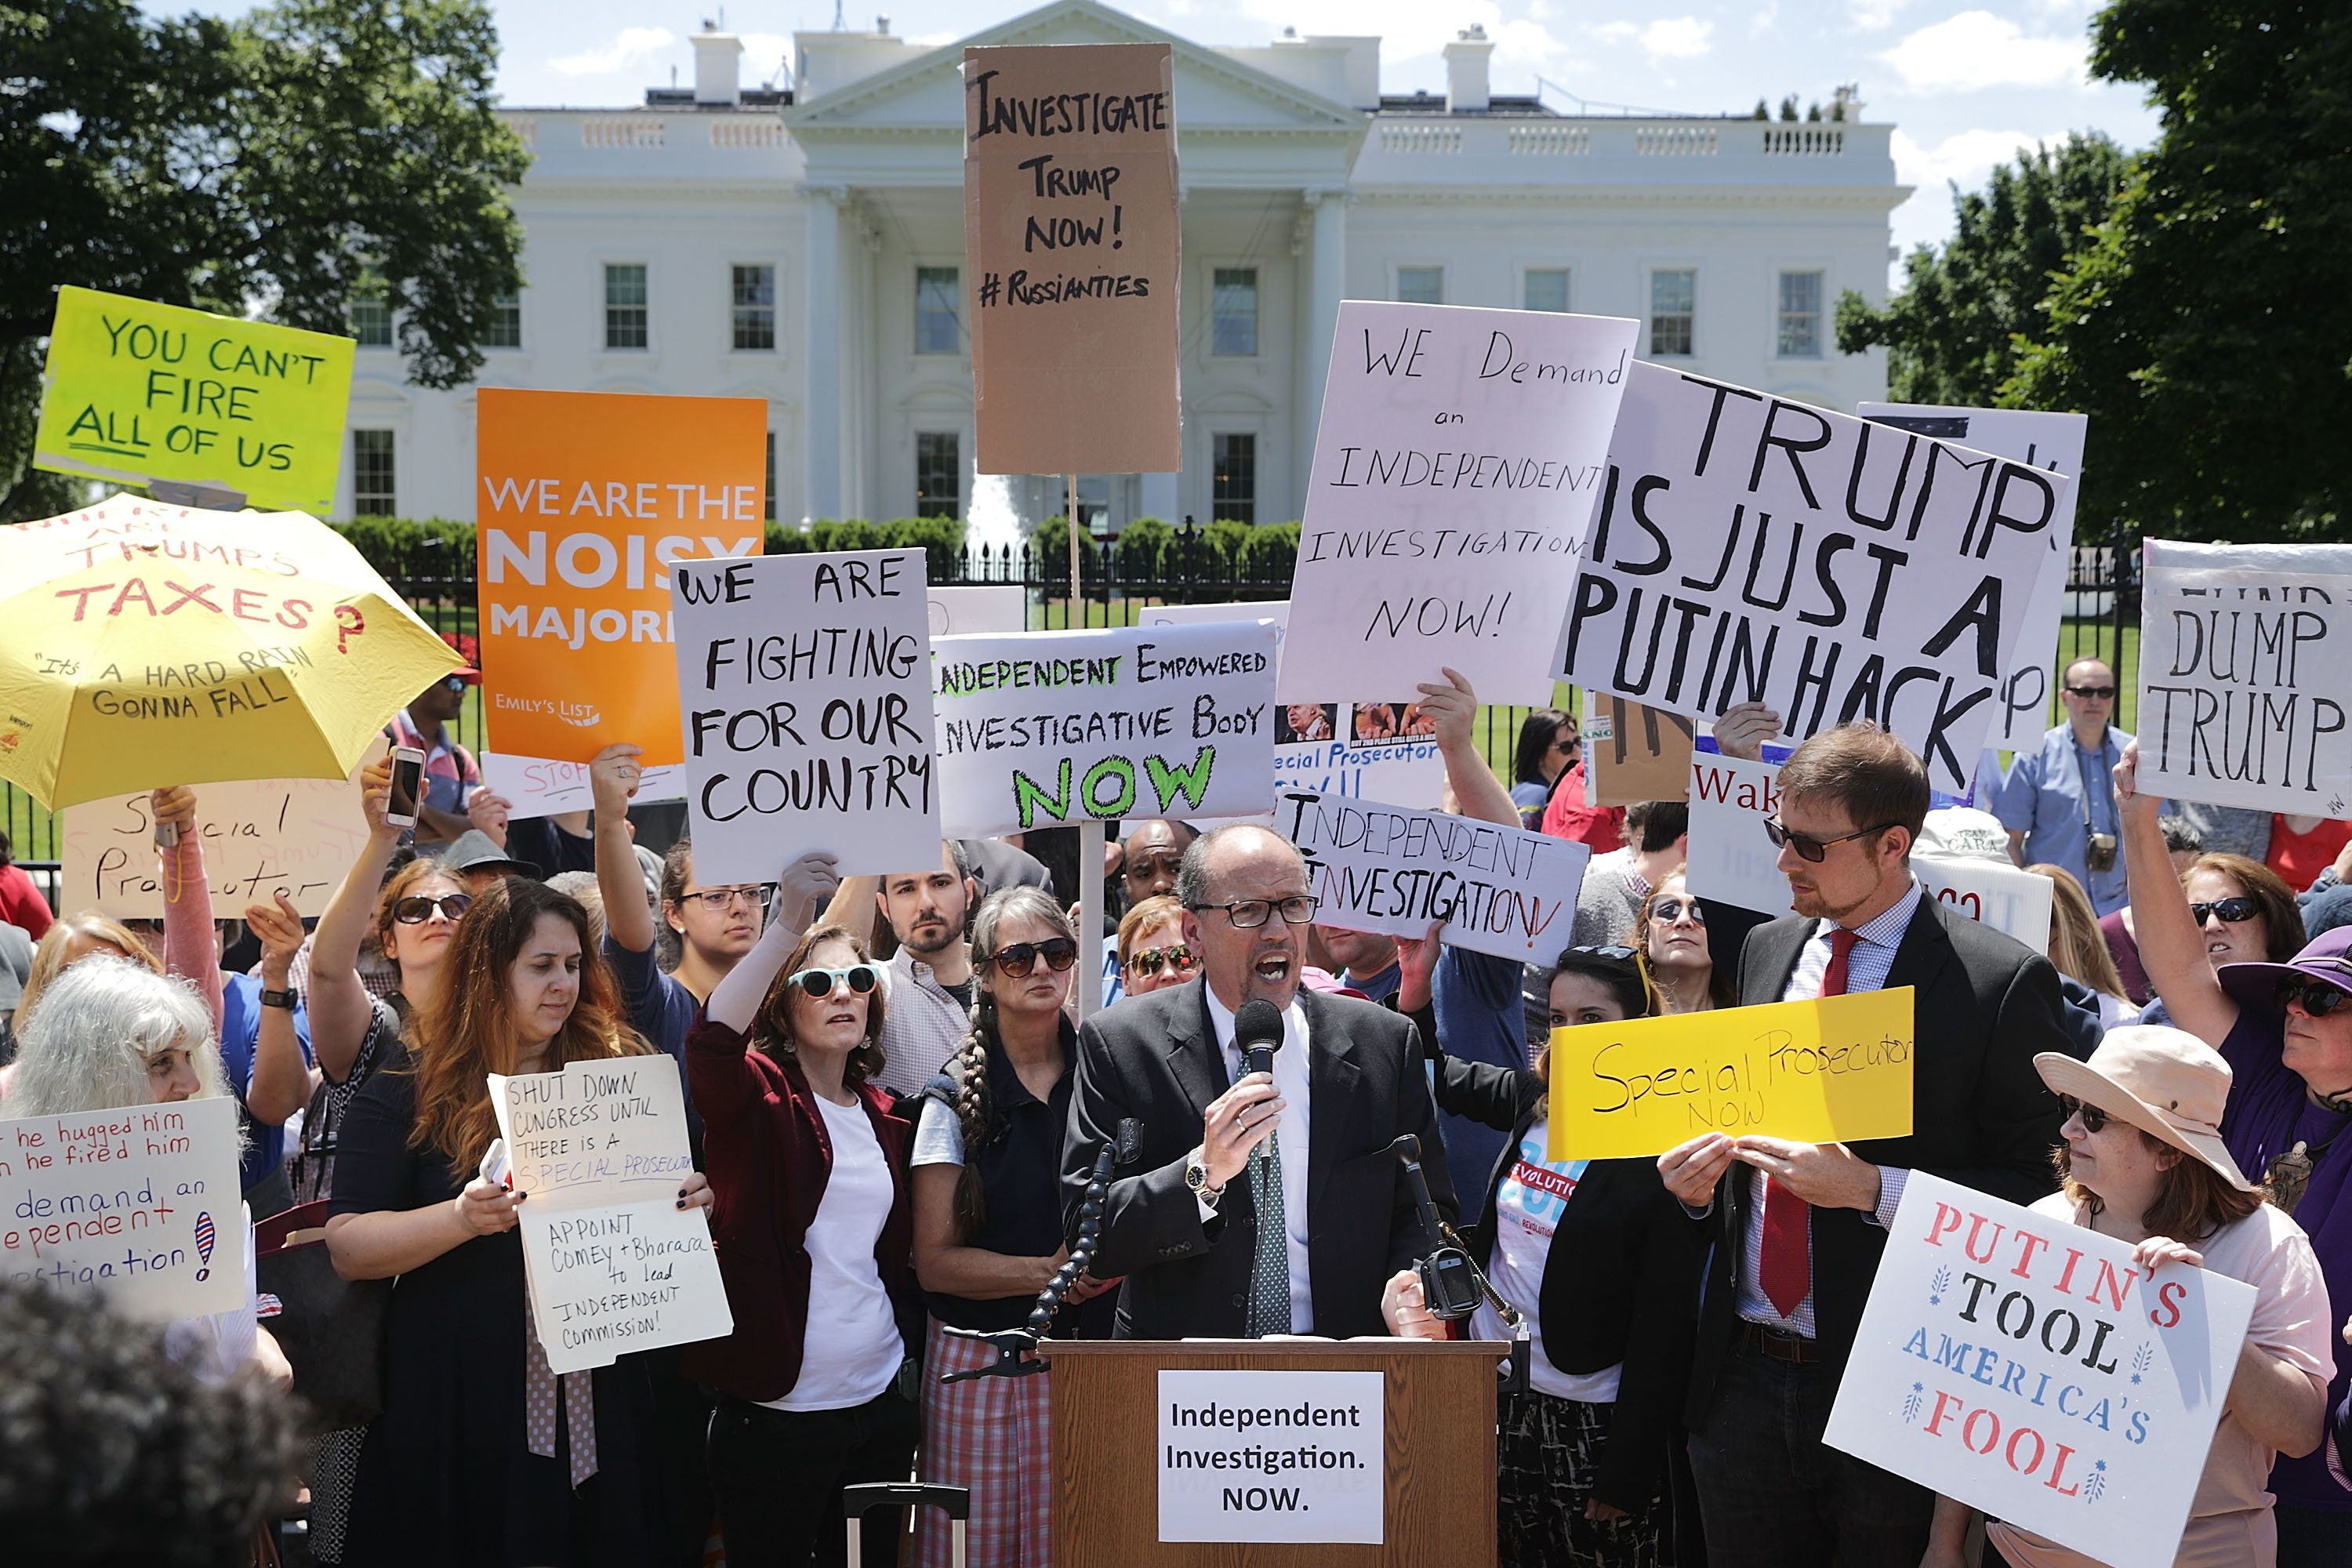 Democratic National Committee Chairman Tom Perez speaks Wednesday as people rally outside the White House to protes